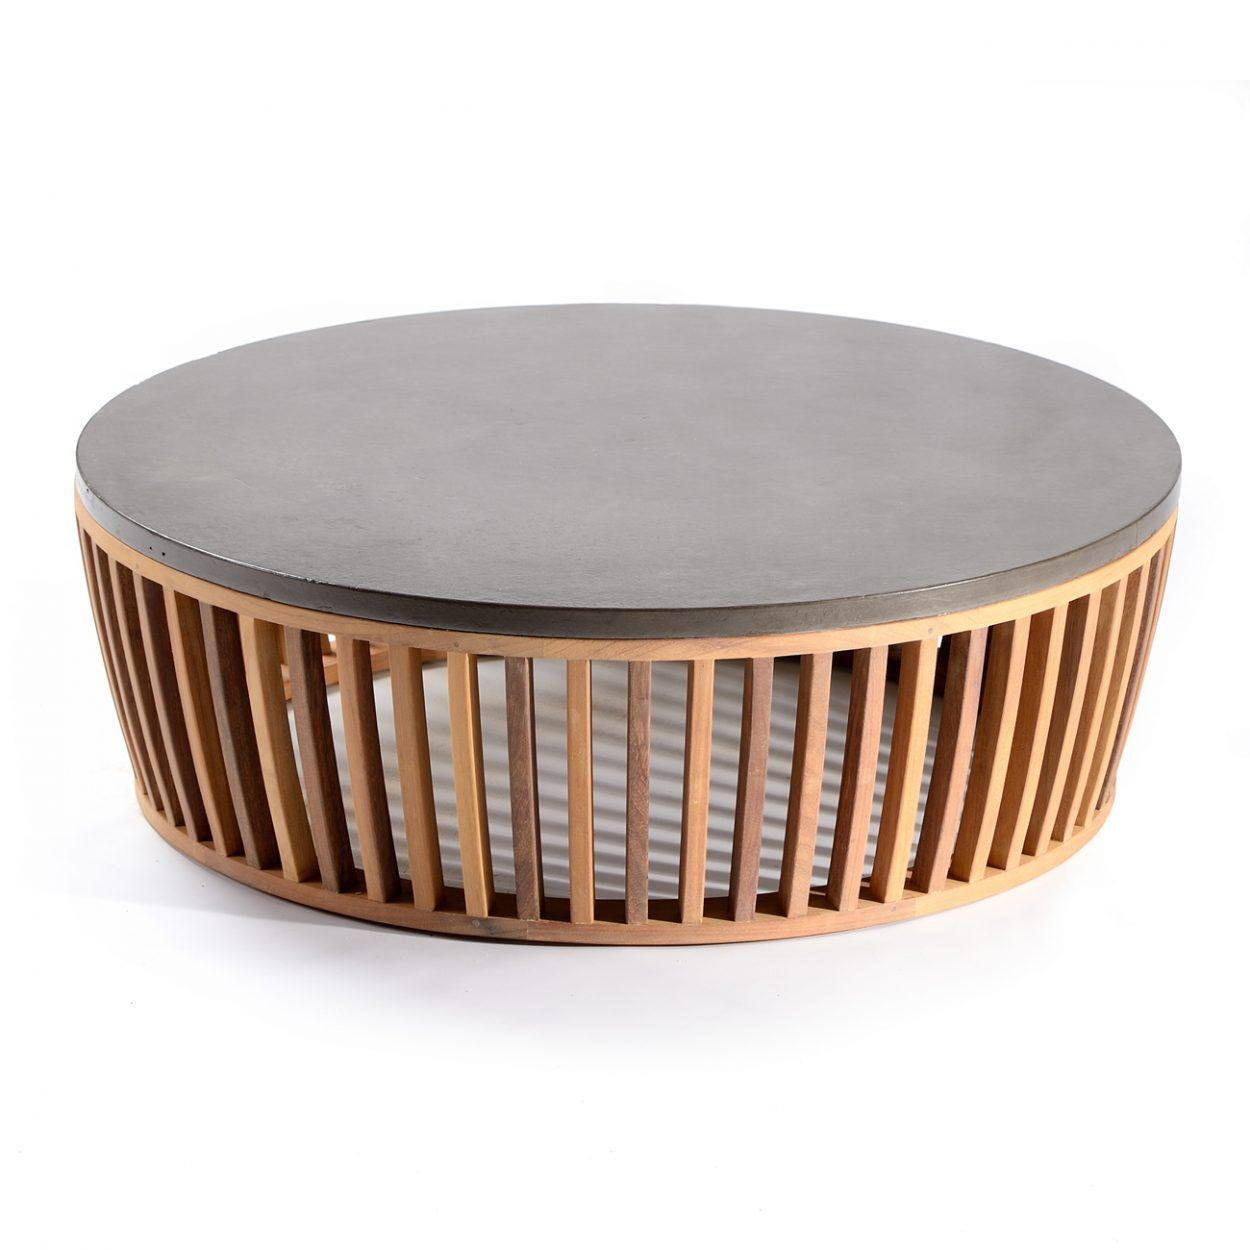 Round Coffee Tables Cape Town: Serengeti Round Coffee Table